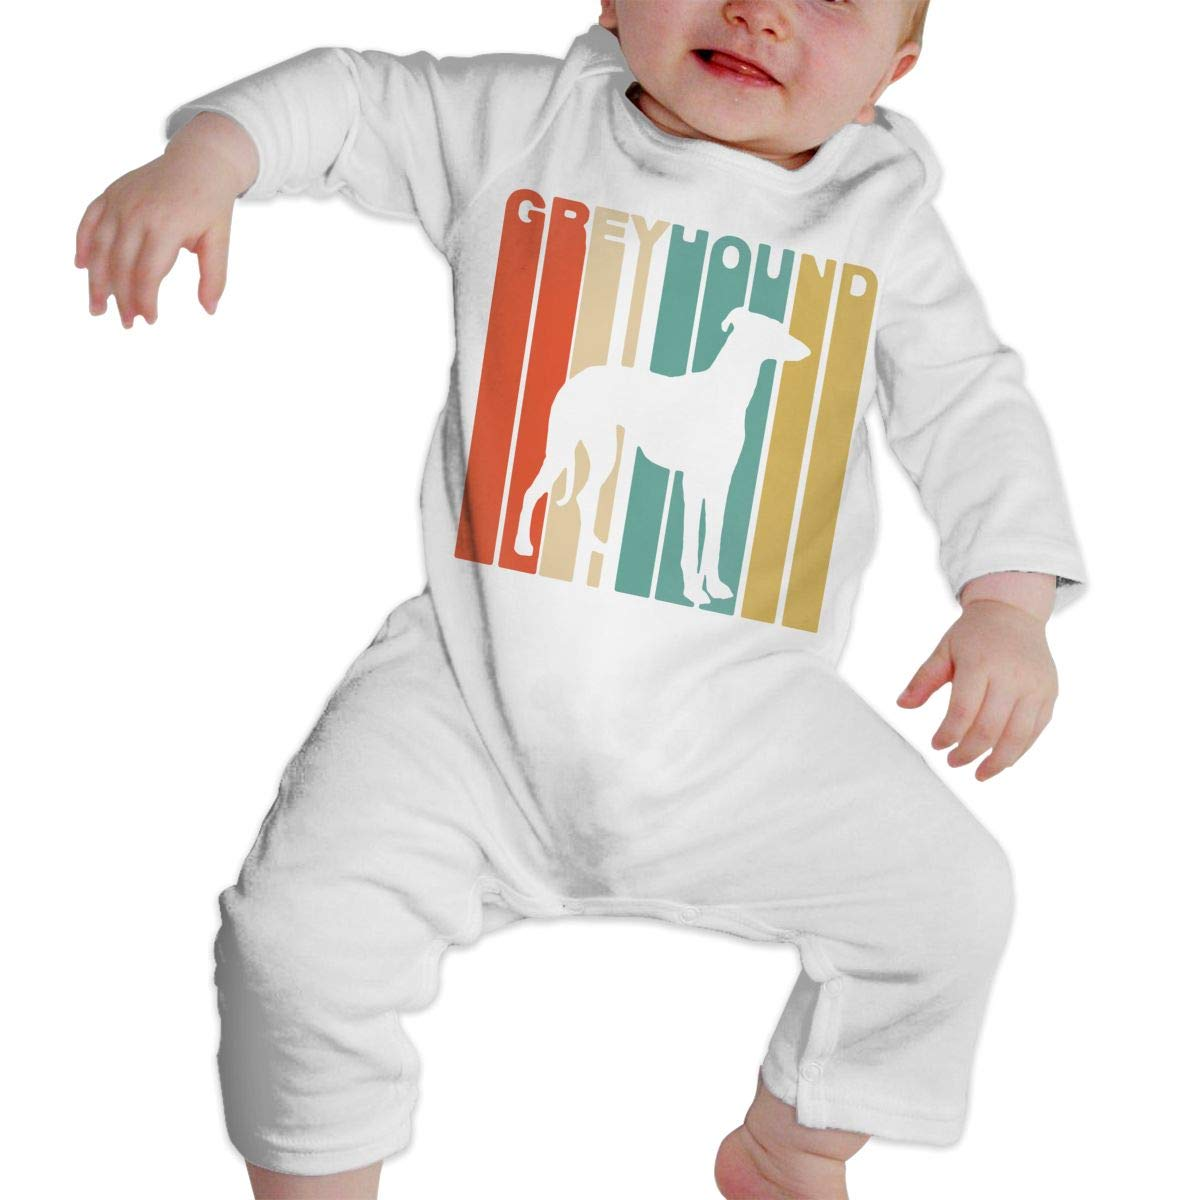 Baby Infant Toddler Cotton Long Sleeve Vintage Style Greyhound Baby Clothes One-Piece Romper Clothes